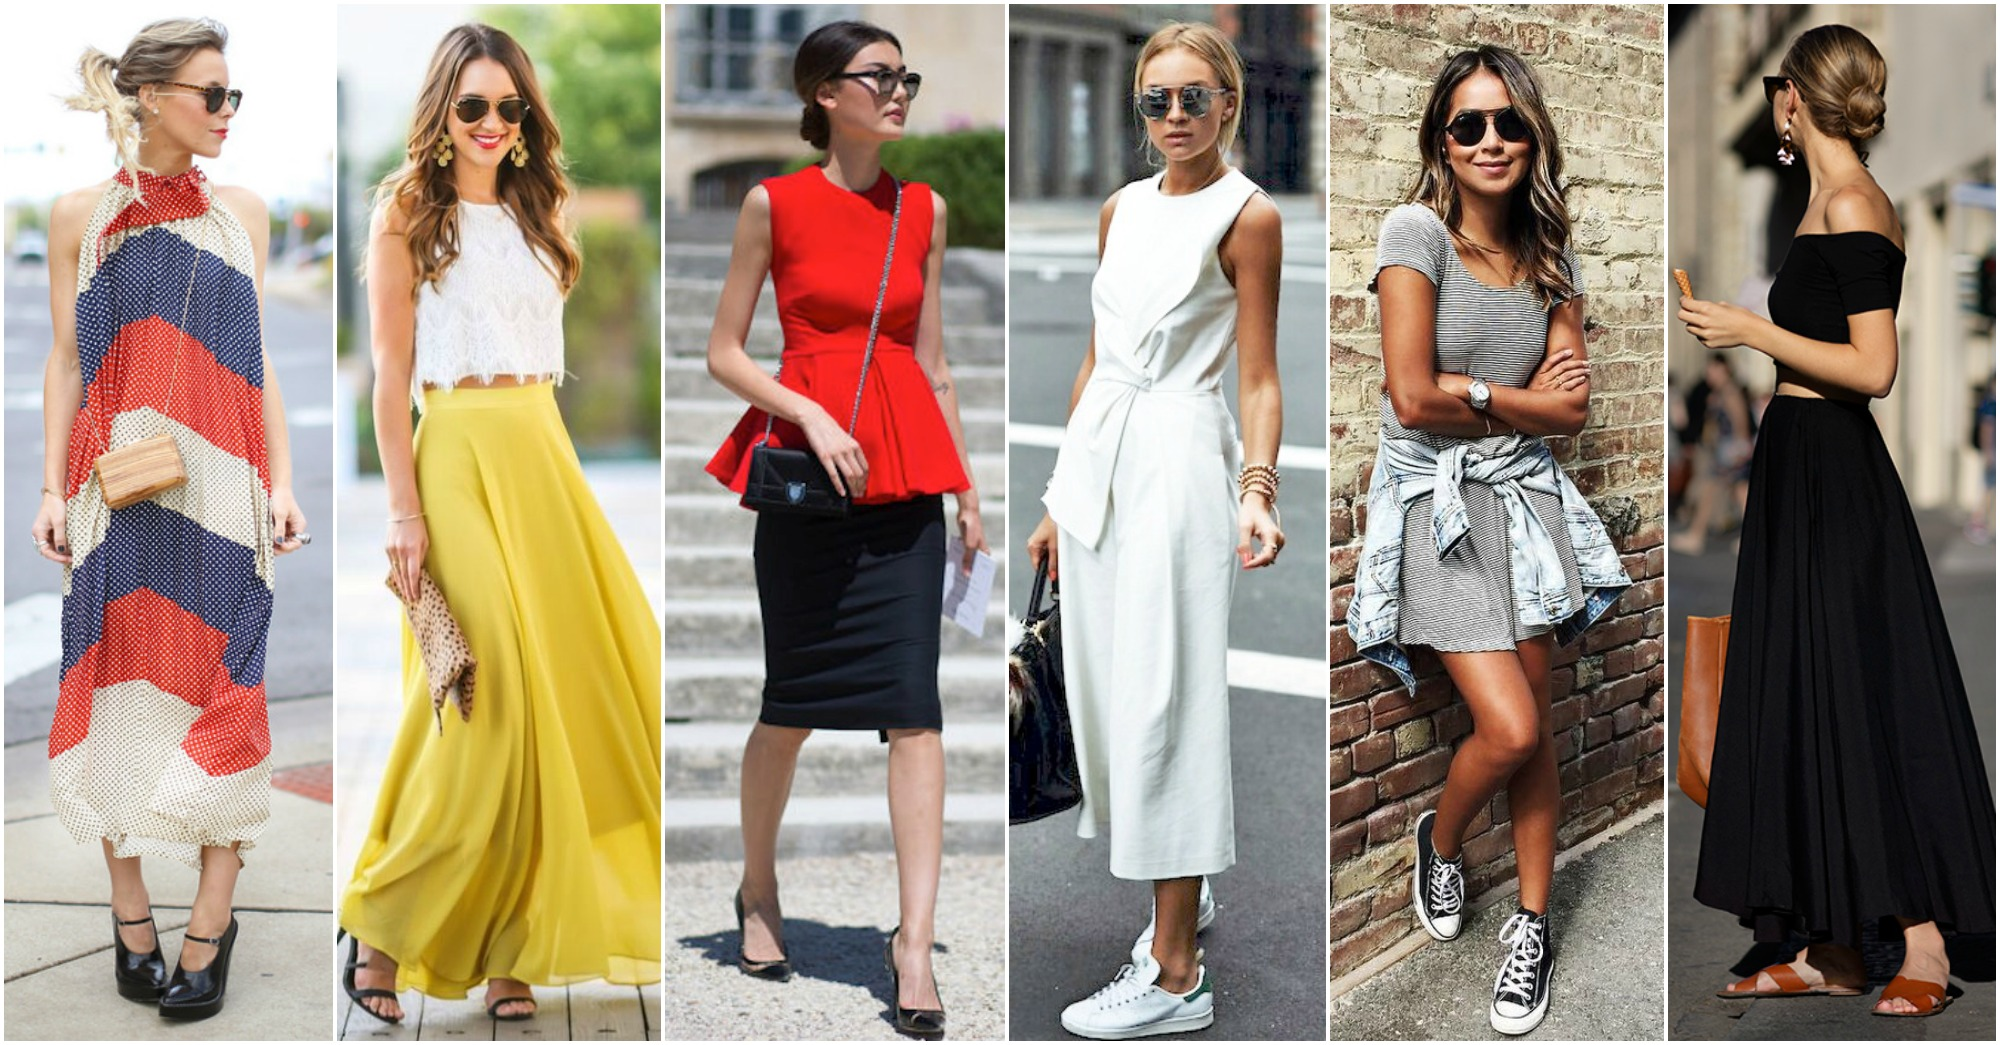 15 Lovely Summer Outfits for Every Occasion To Copy Right Now